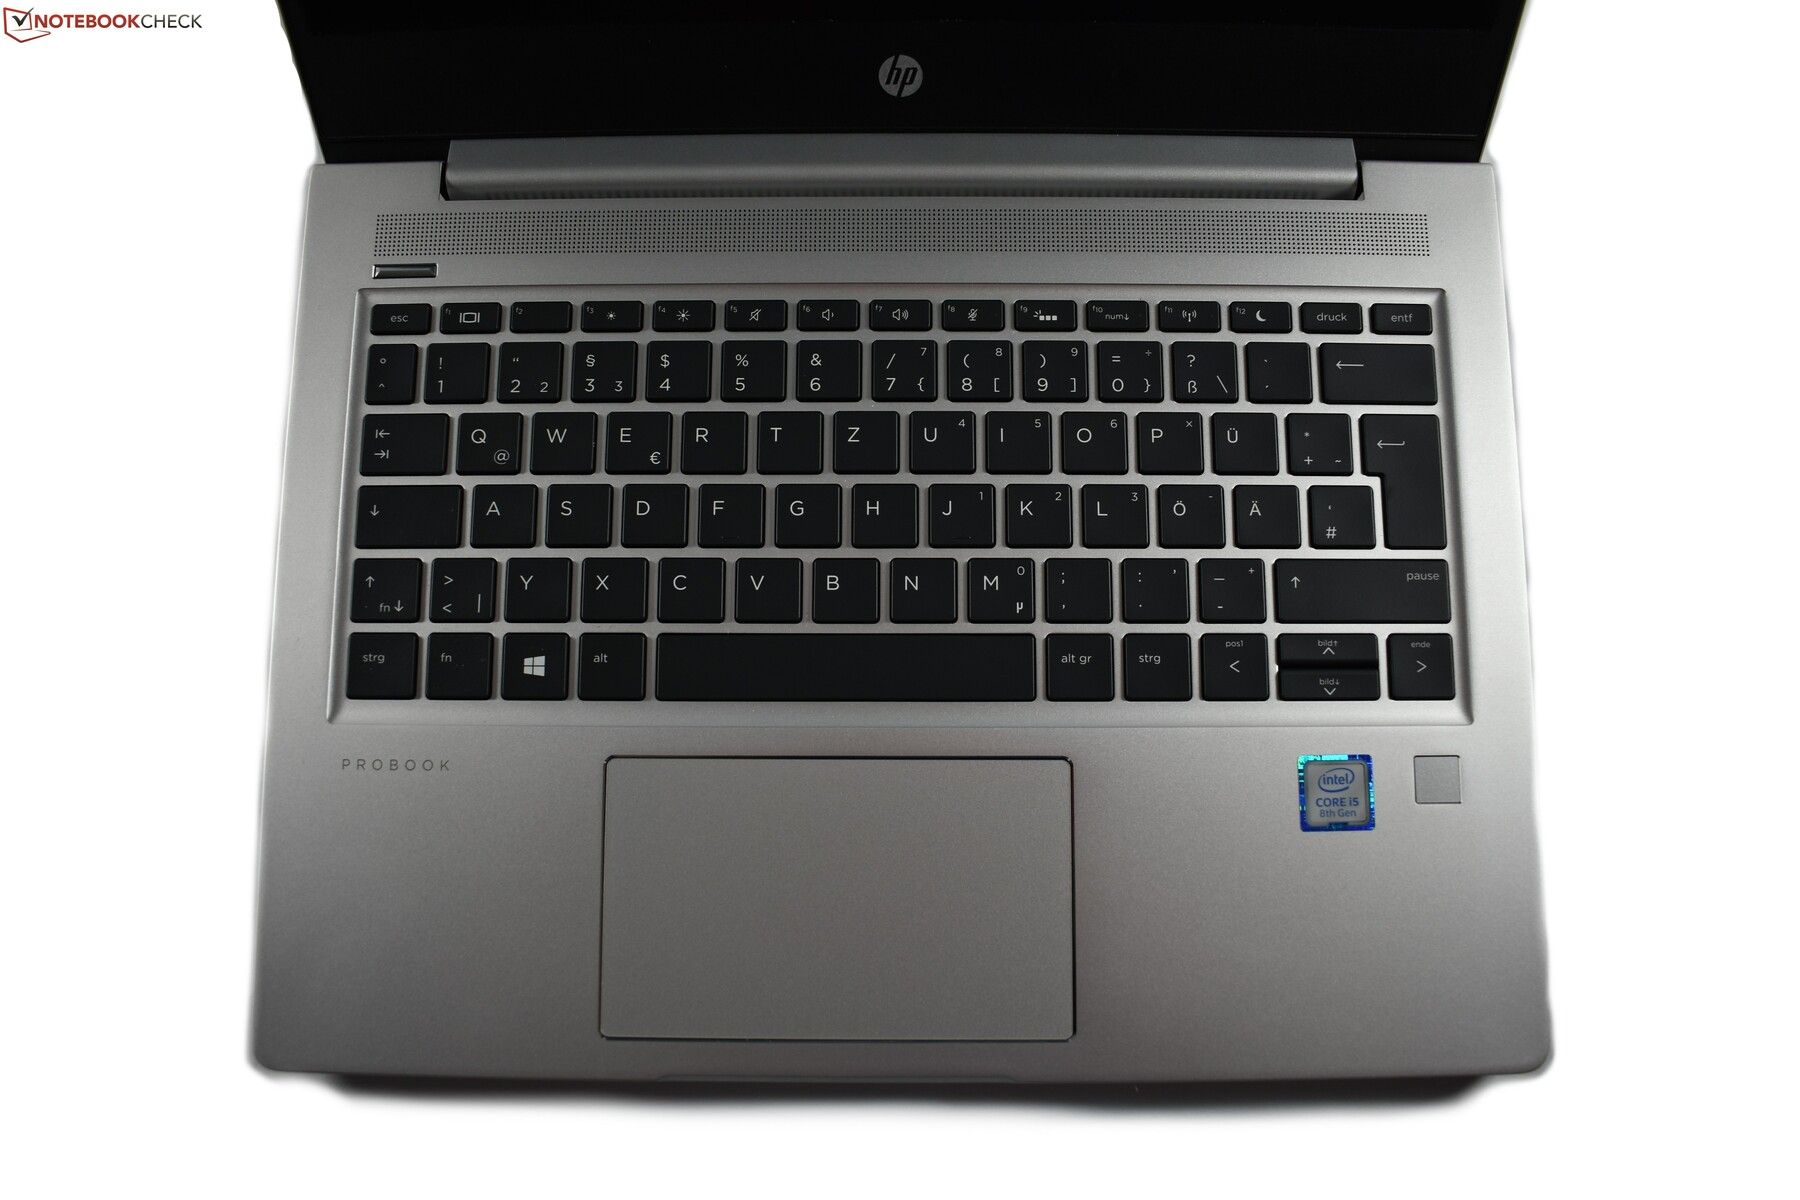 HP PROBOOK 430 G1 QUALCOMM WLAN DRIVERS